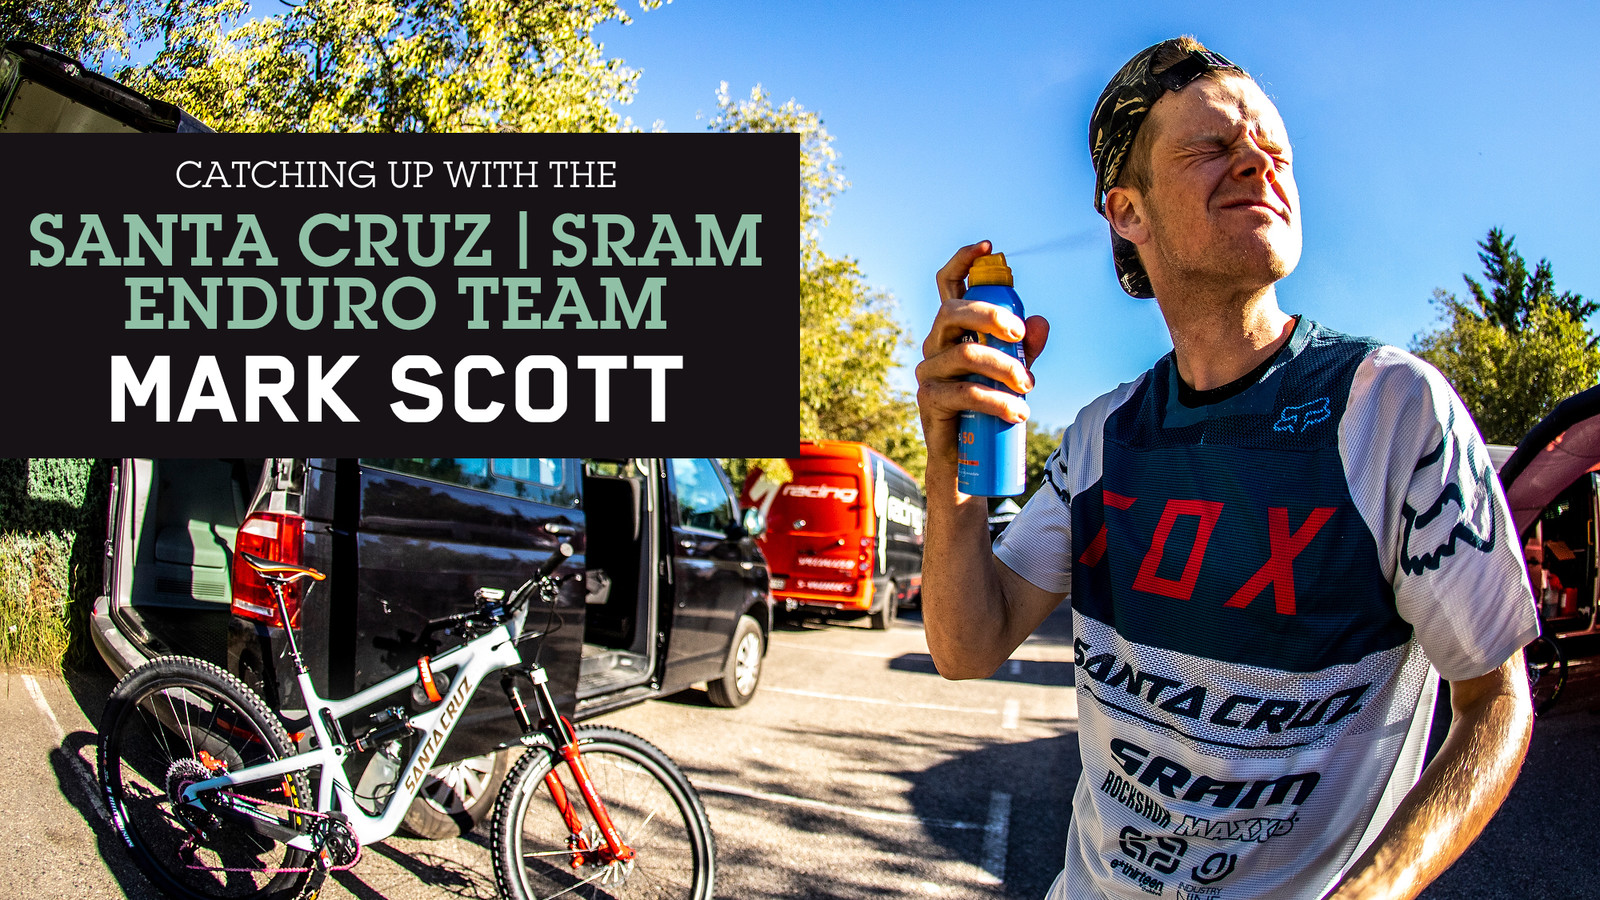 Catching up with the Santa Cruz | SRAM Enduro Team - Part 2: Mark Scott